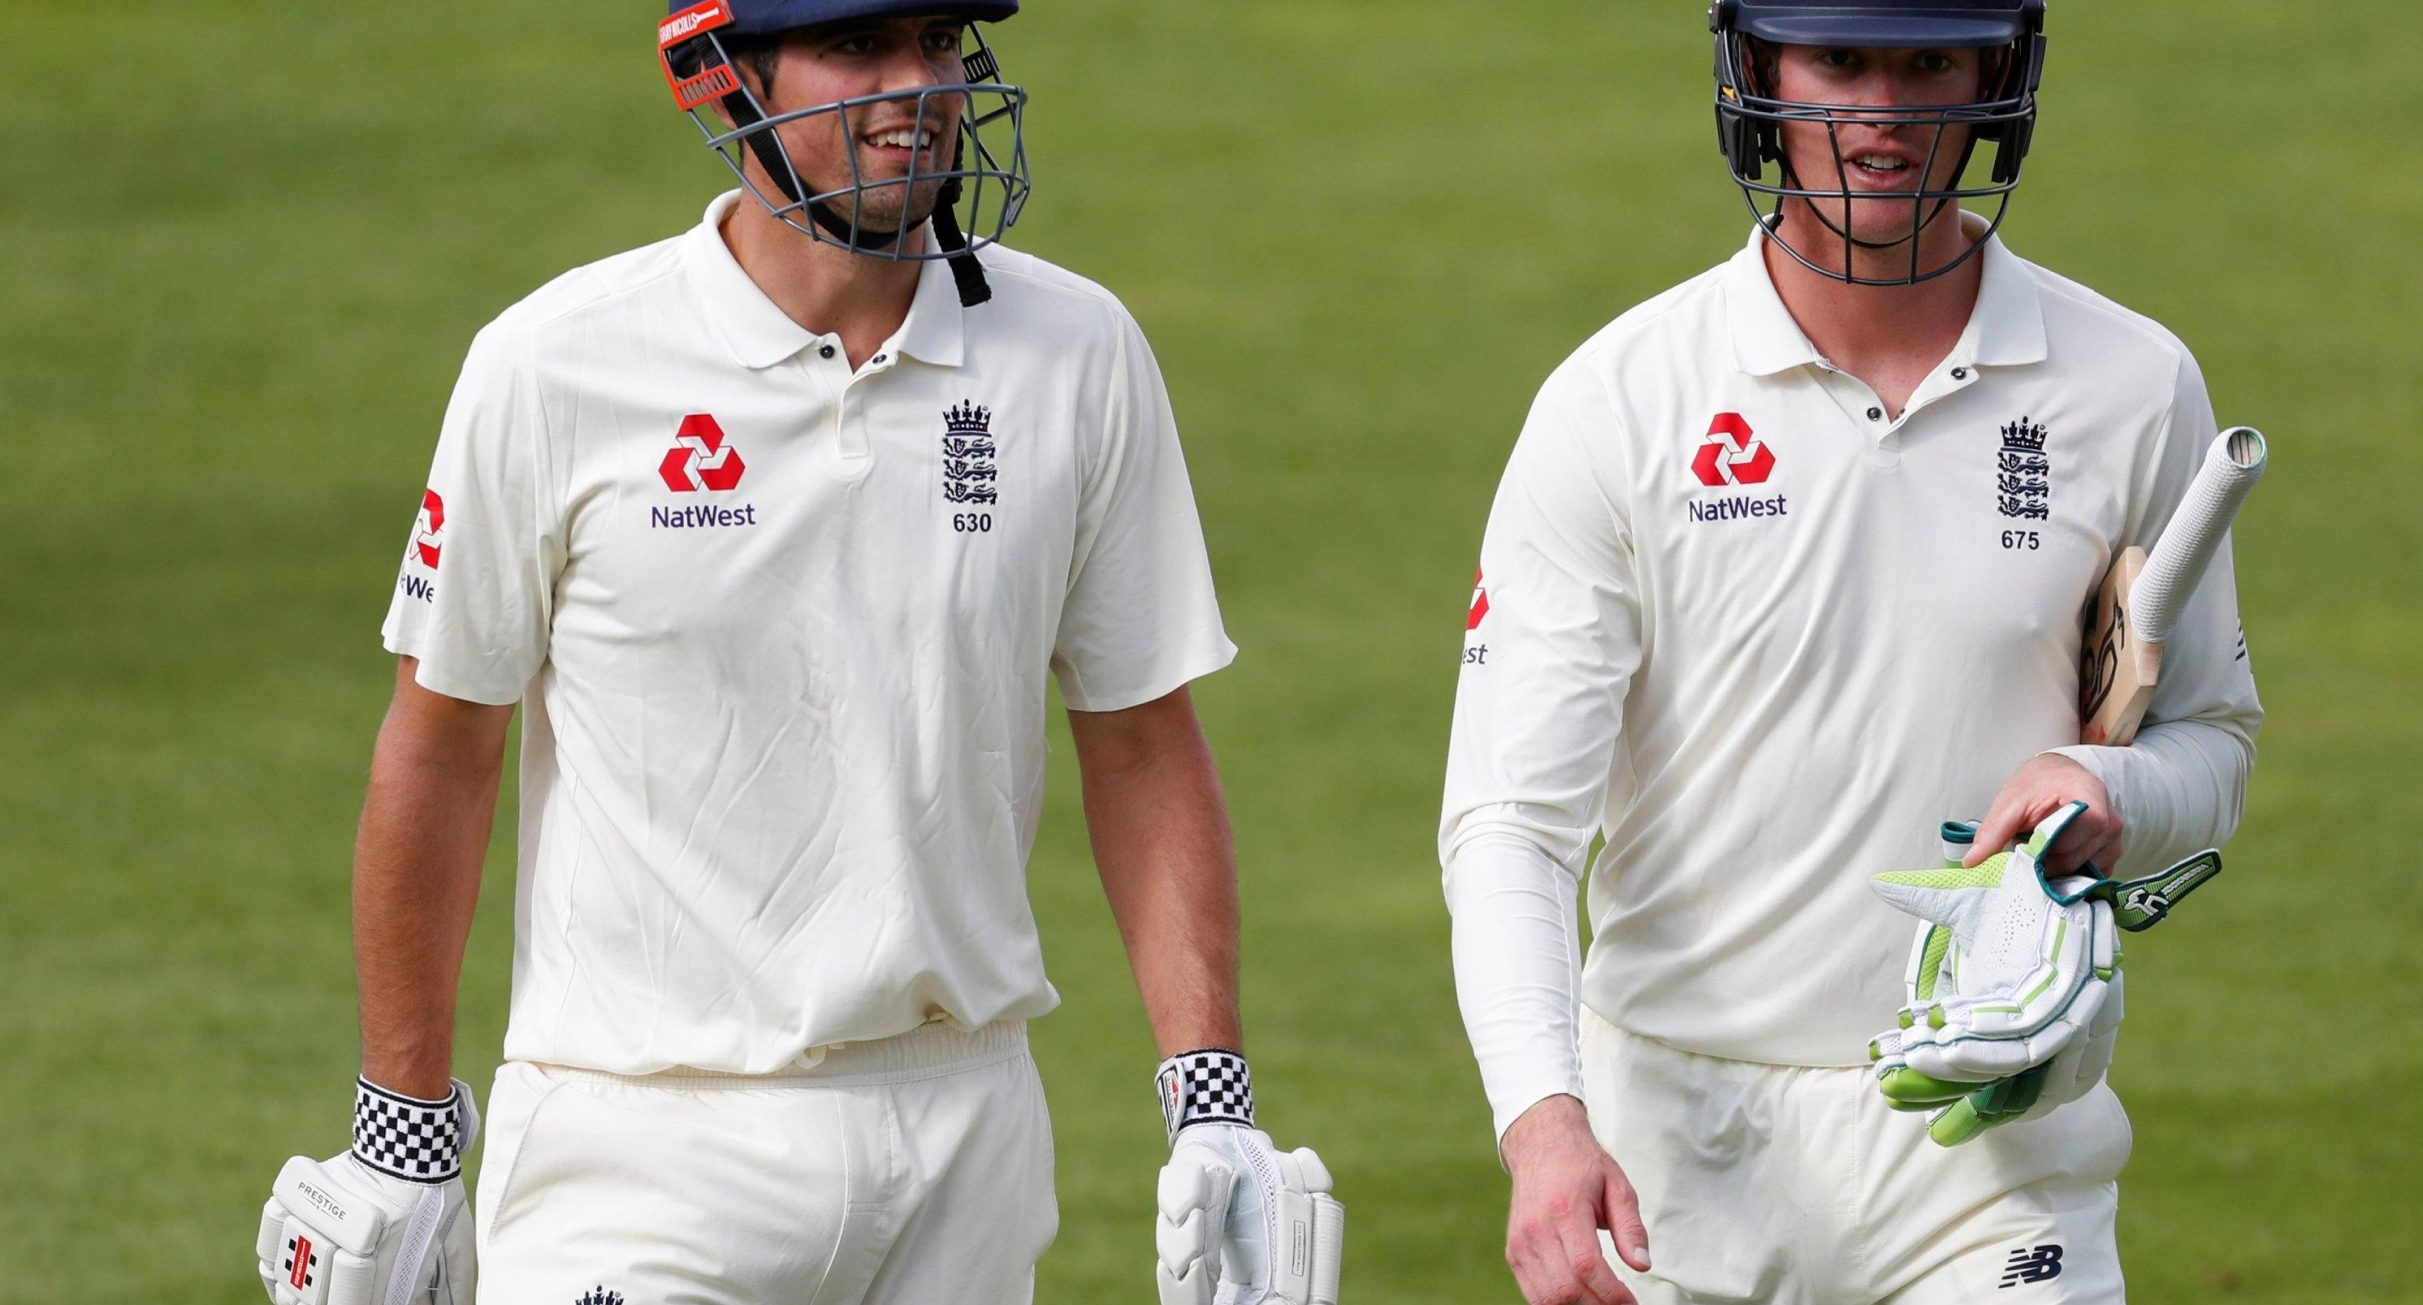 On a big day for both Alastair Cook and Keaton Jennings, only one of the England openers stepped up to the mark